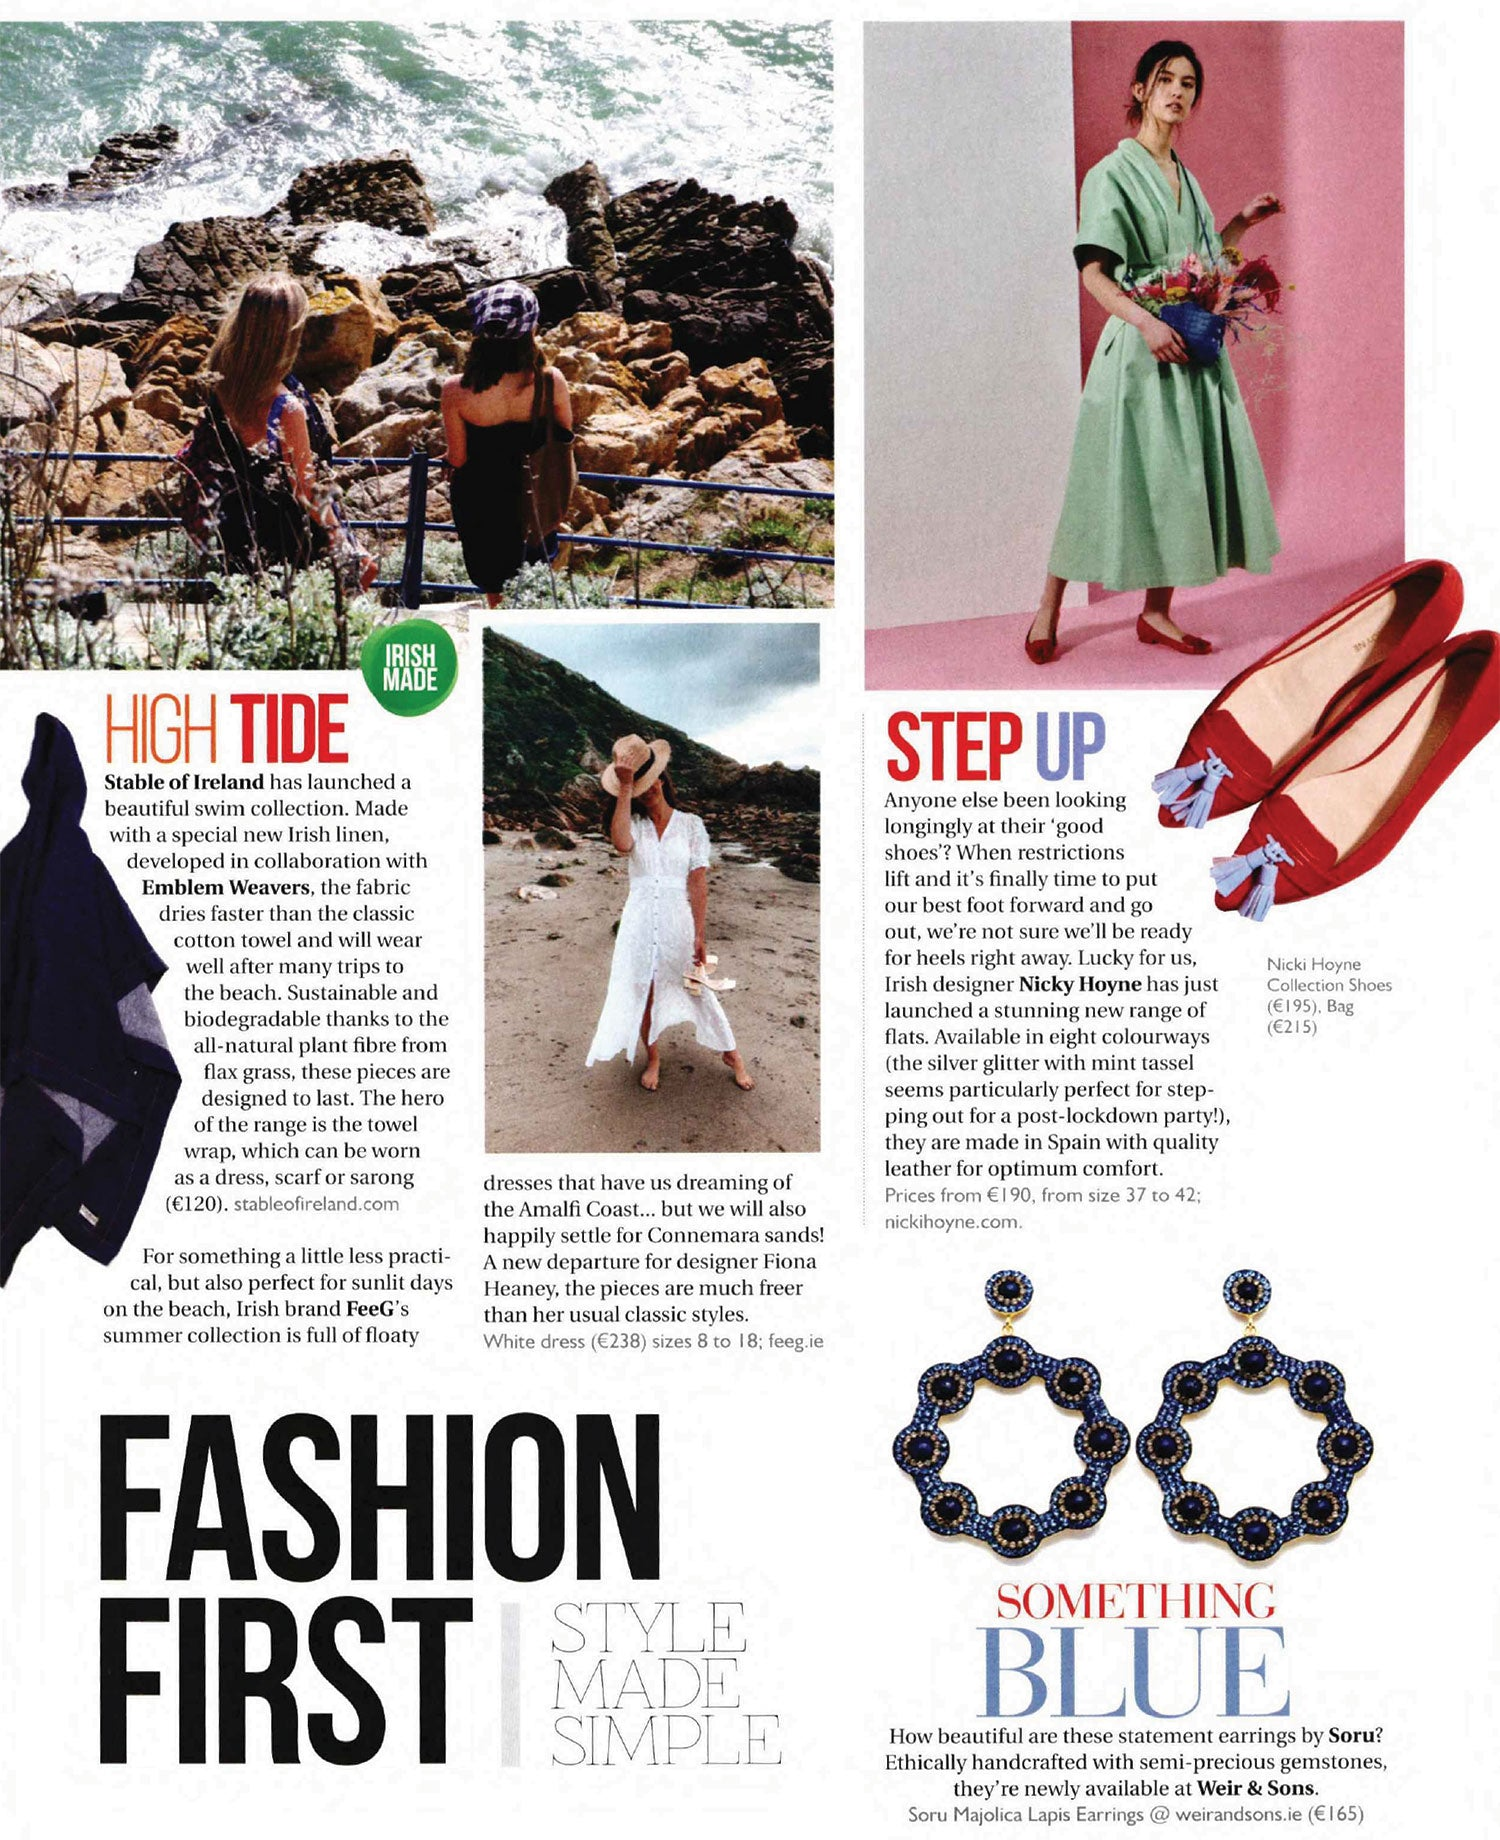 Nicki Hoyne Collection Shoes in Irish Country Magazine May/June 2021